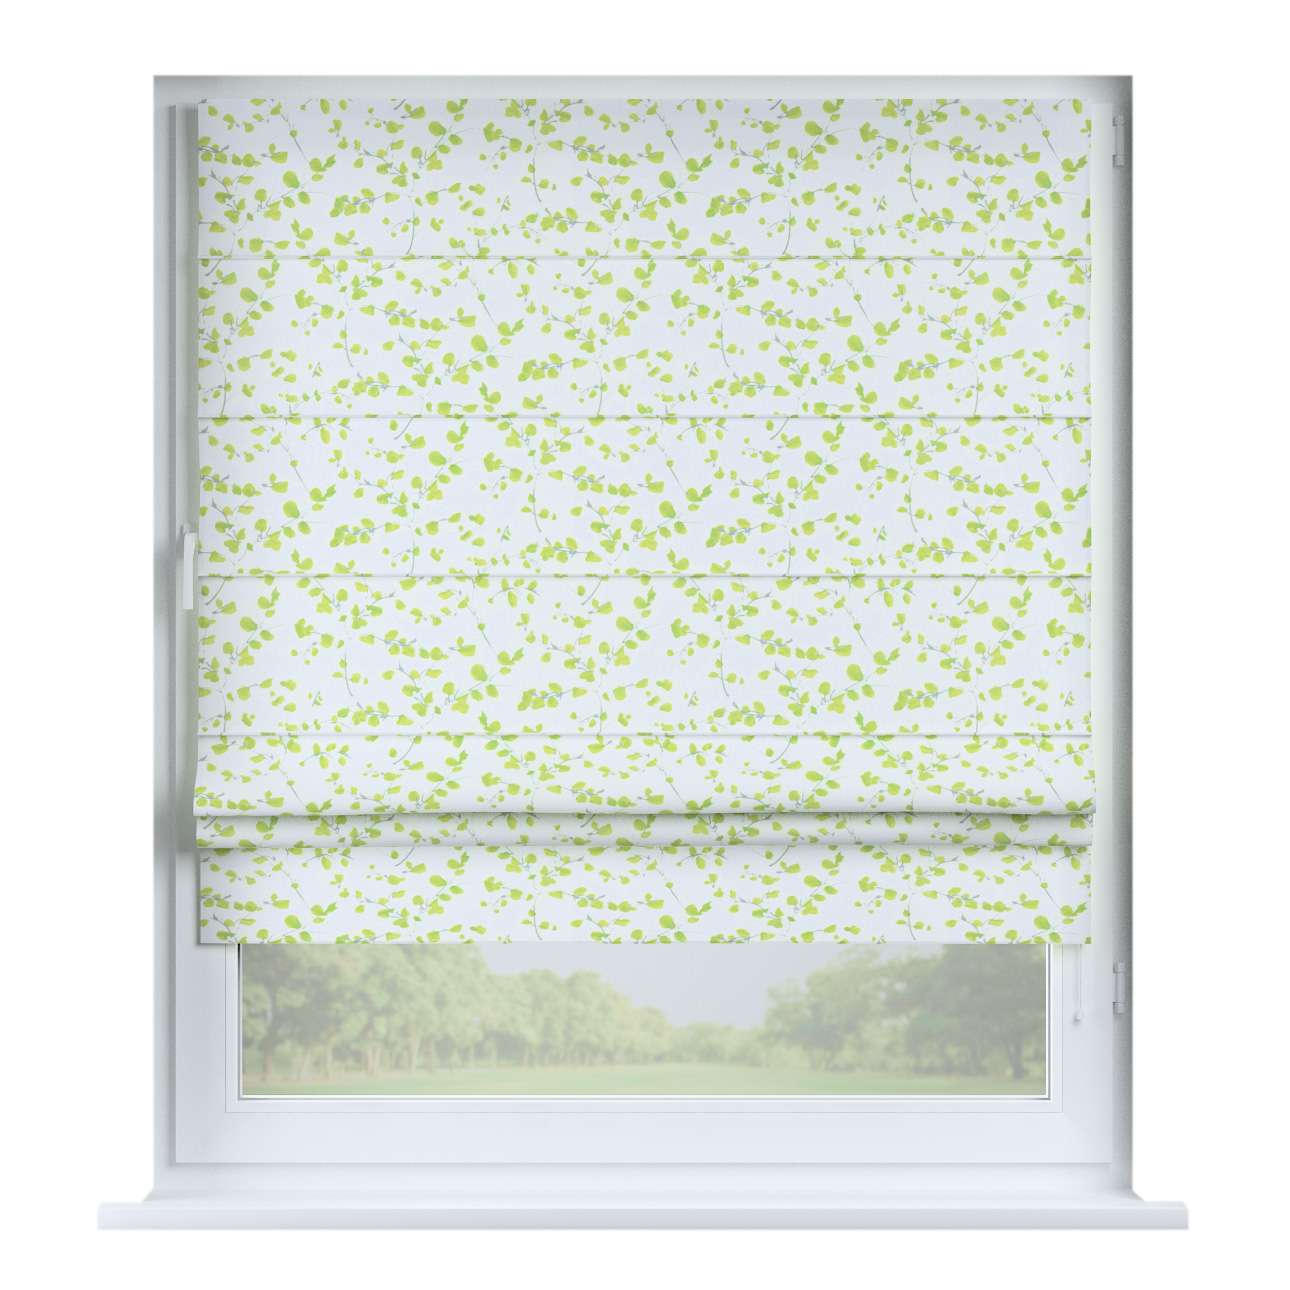 Padva roman blind  80 x 170 cm (31.5 x 67 inch) in collection Aquarelle, fabric: 140-76